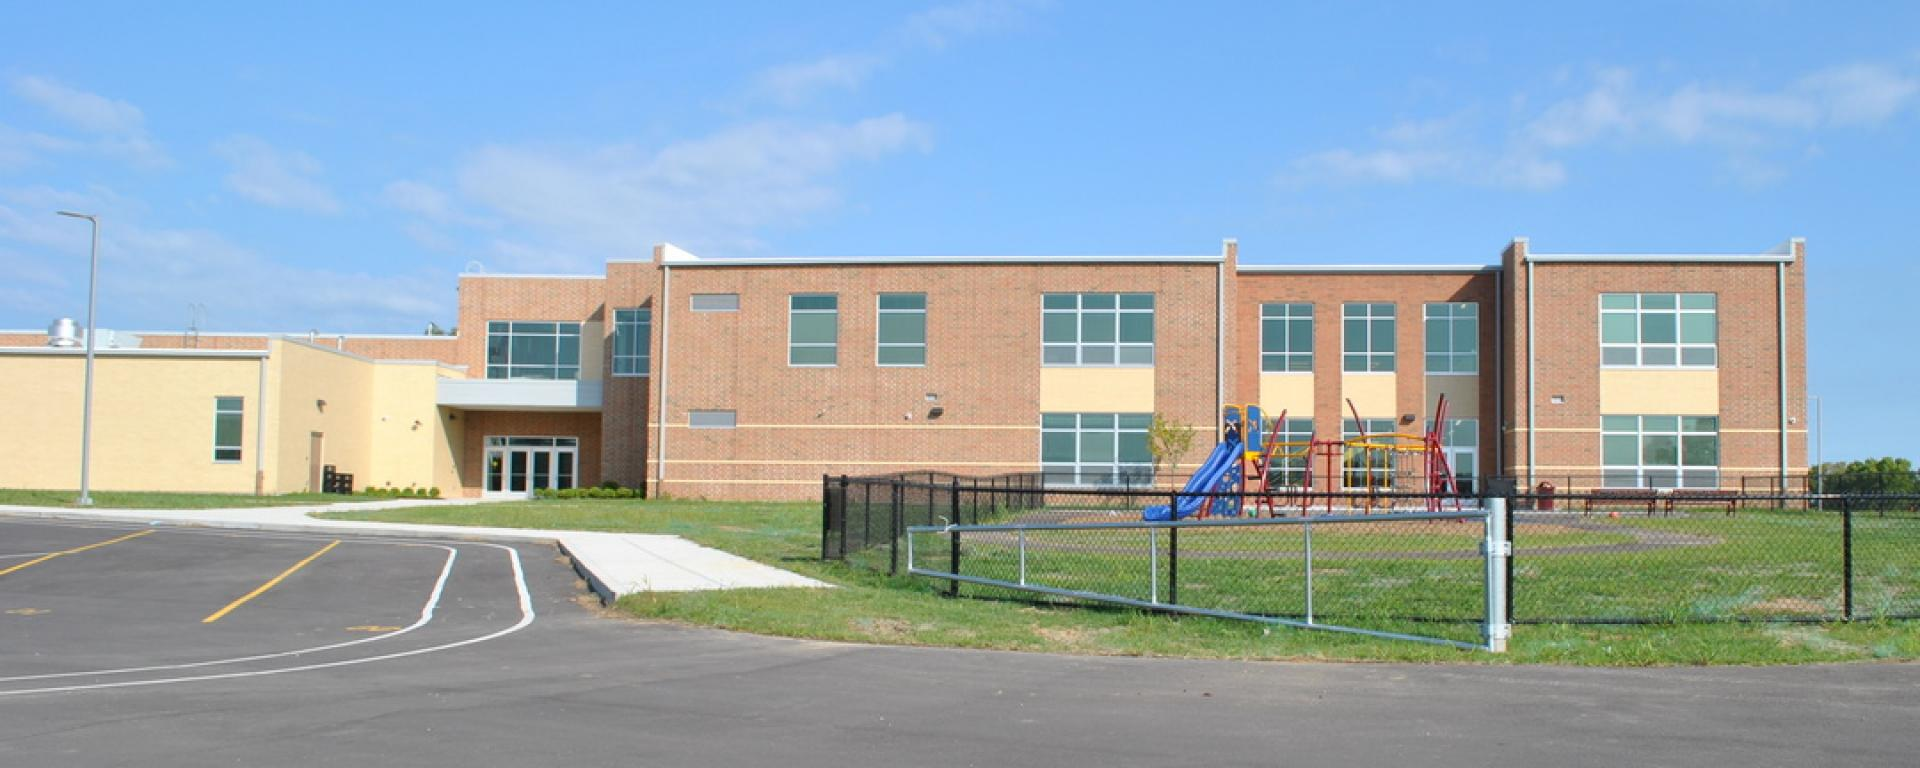 Fairfield Compass Elementary School